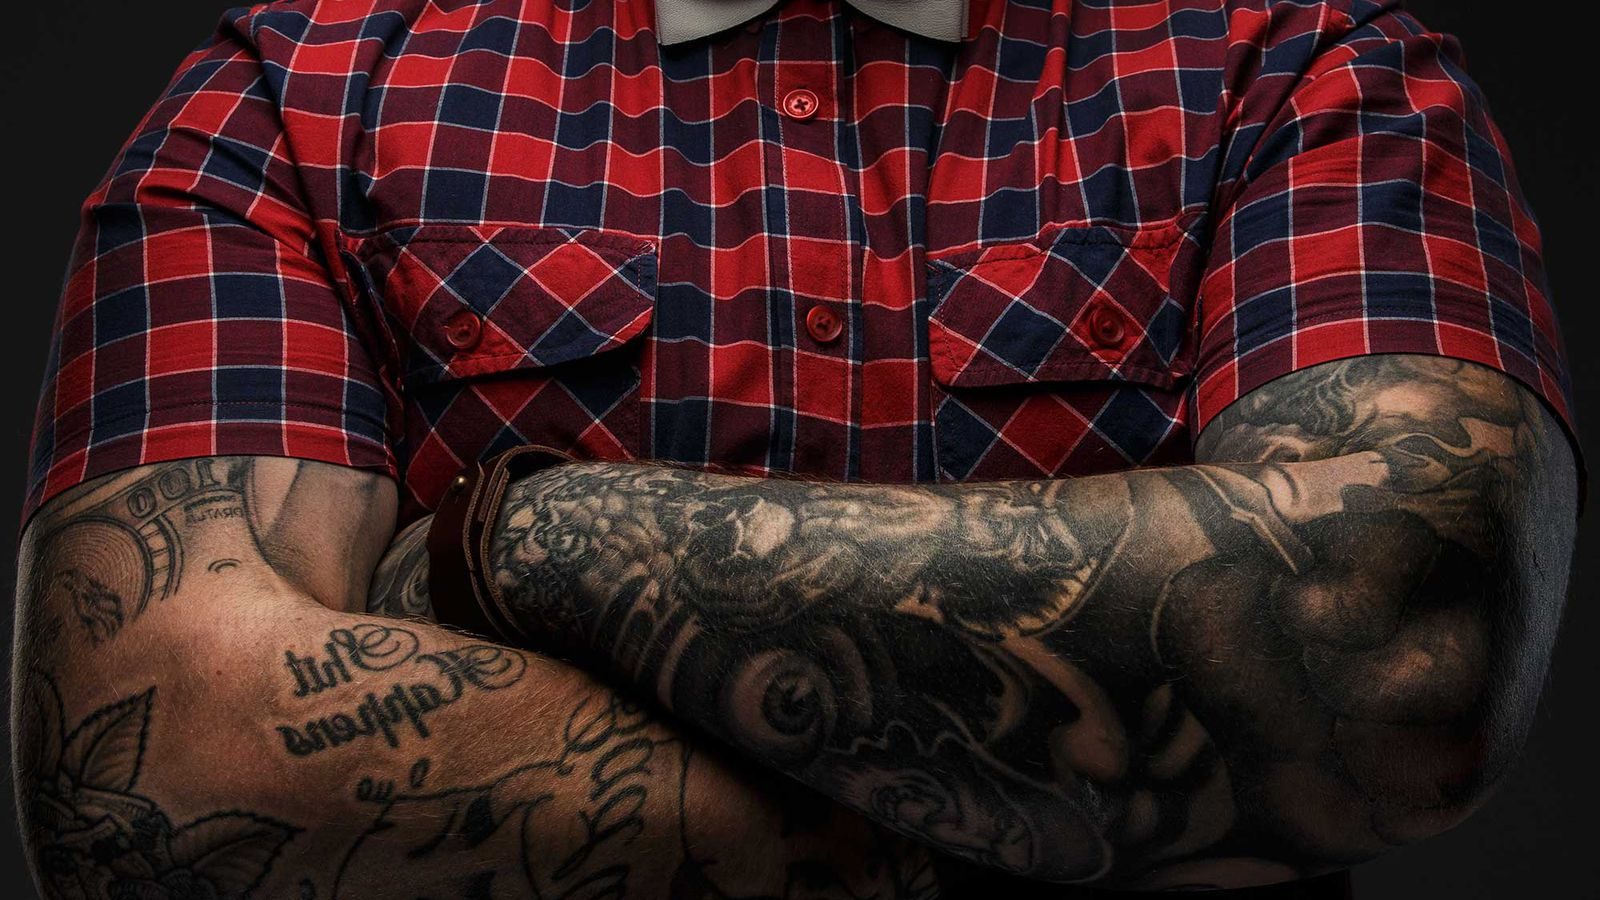 Heavily Tattooed Man Claims He Was Denied Service Due To